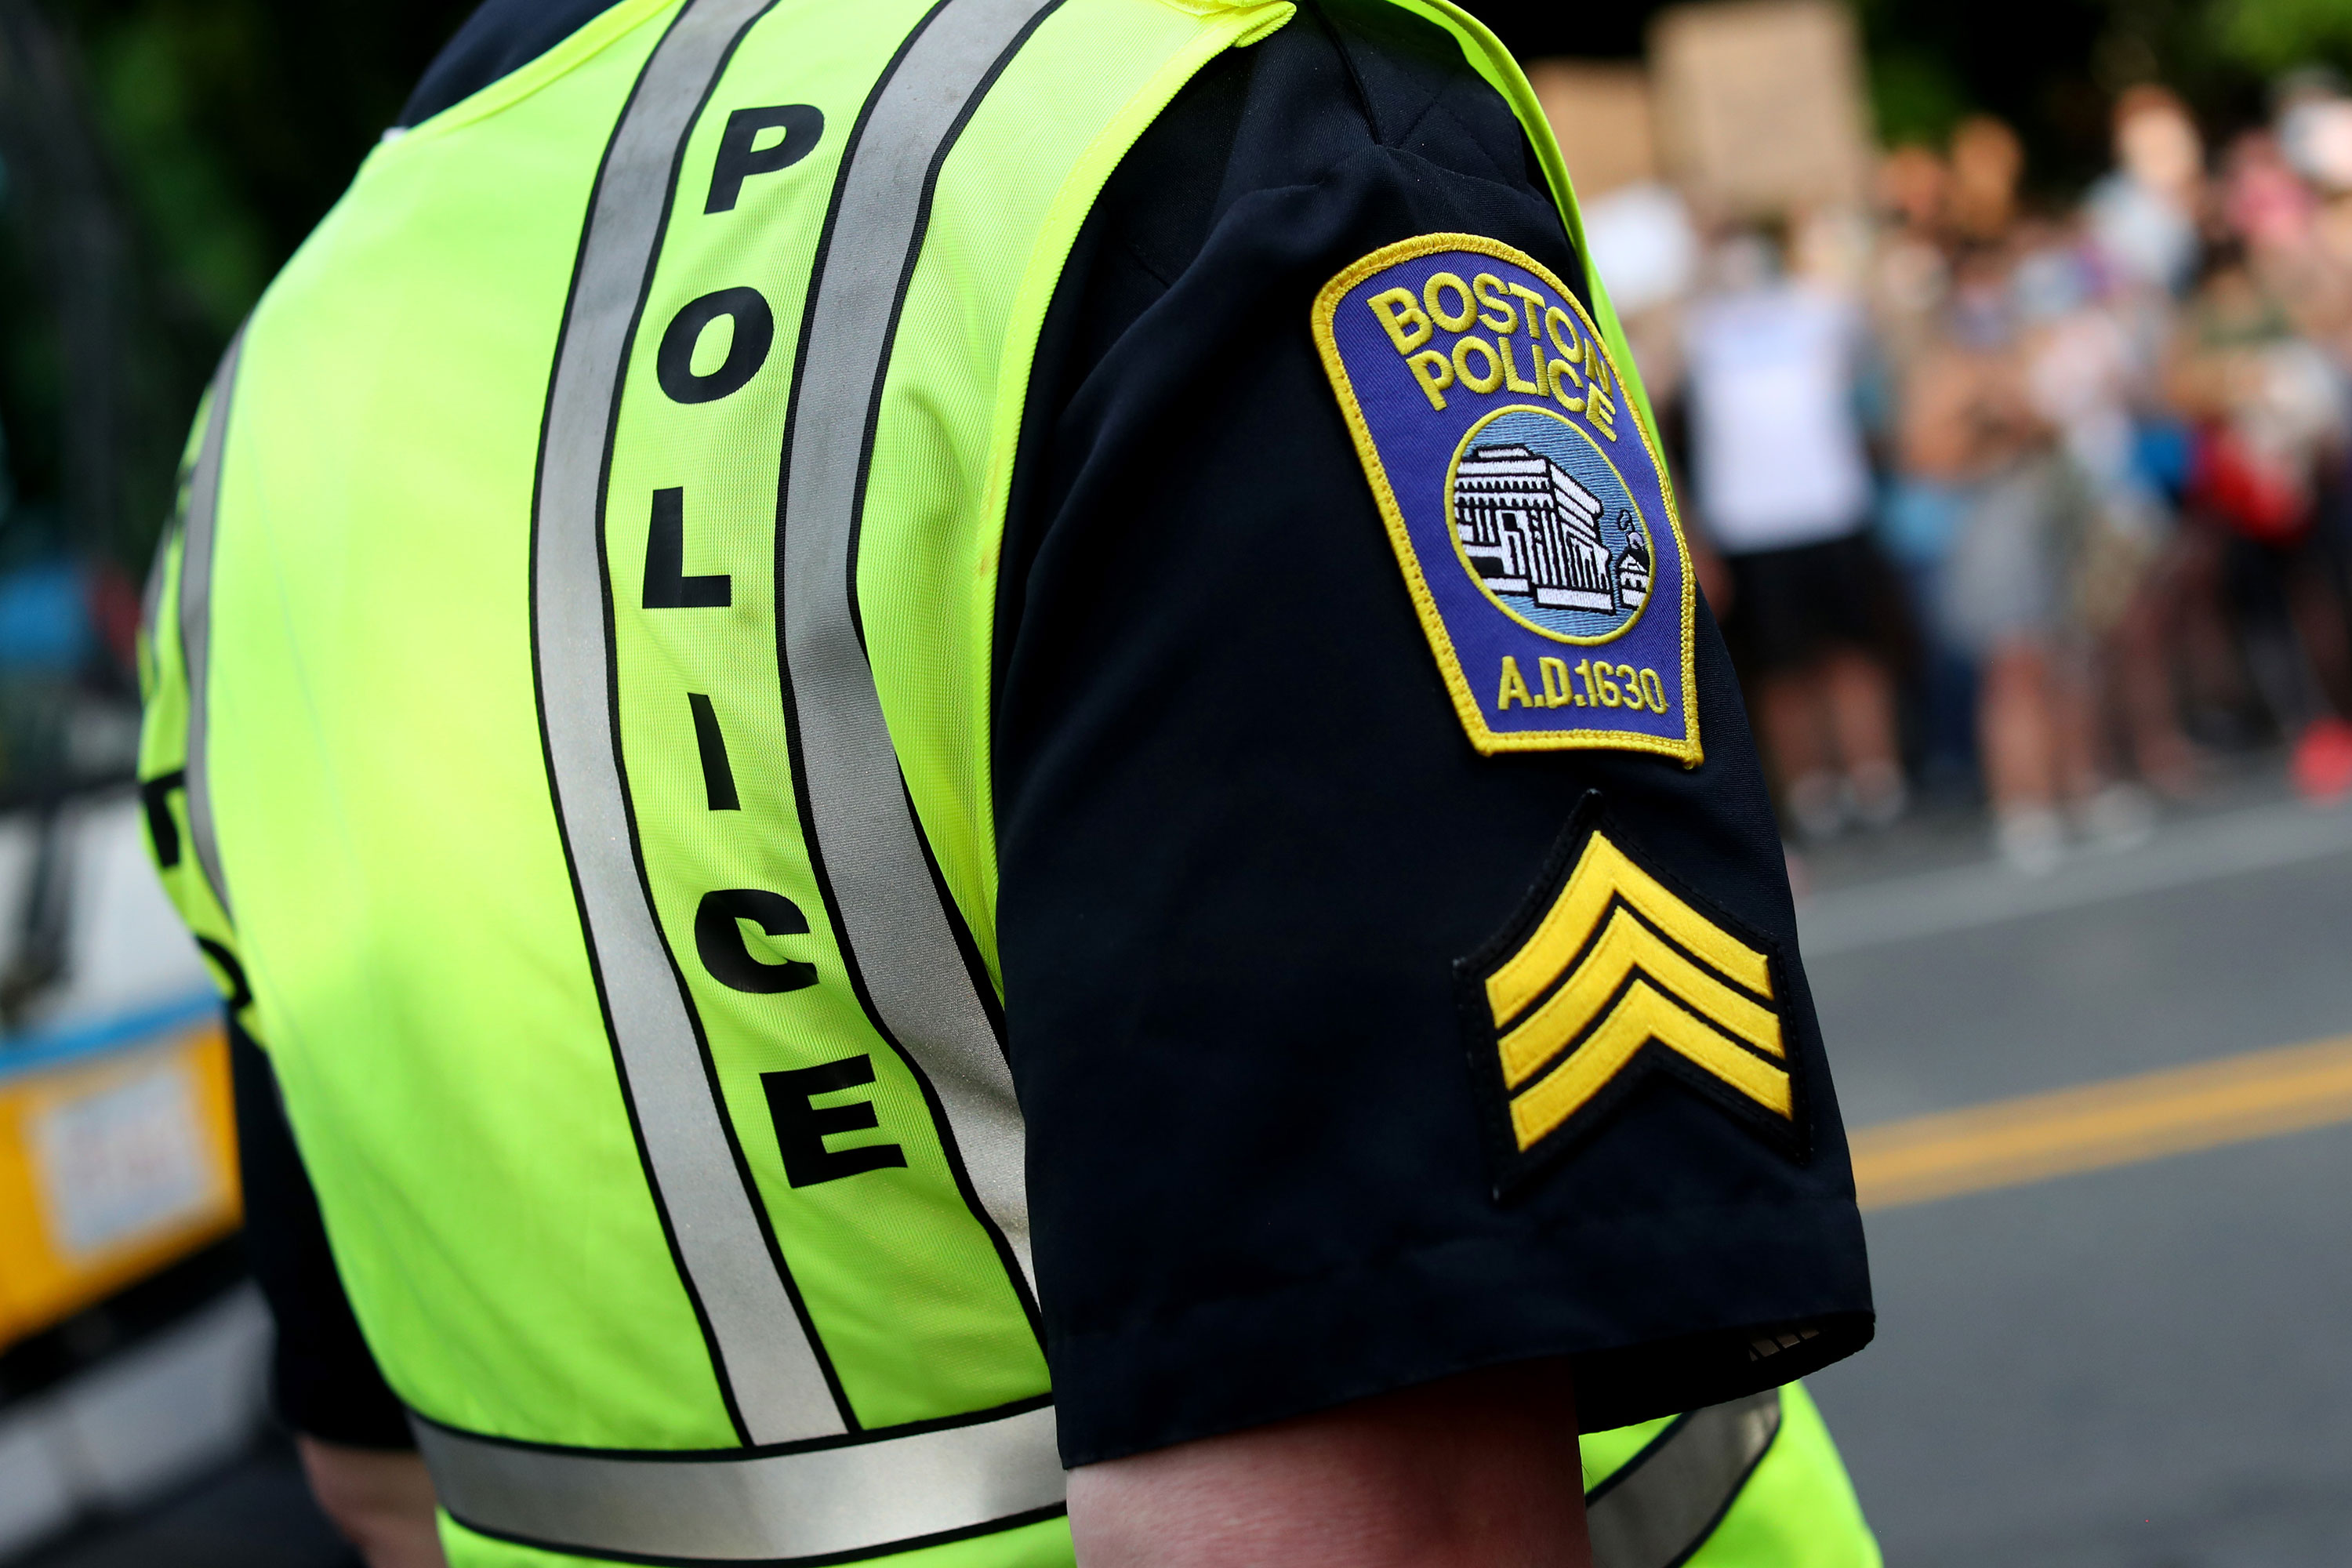 A Boston Police officer stands beside a protest on June 4 in Boston, Massachusetts.